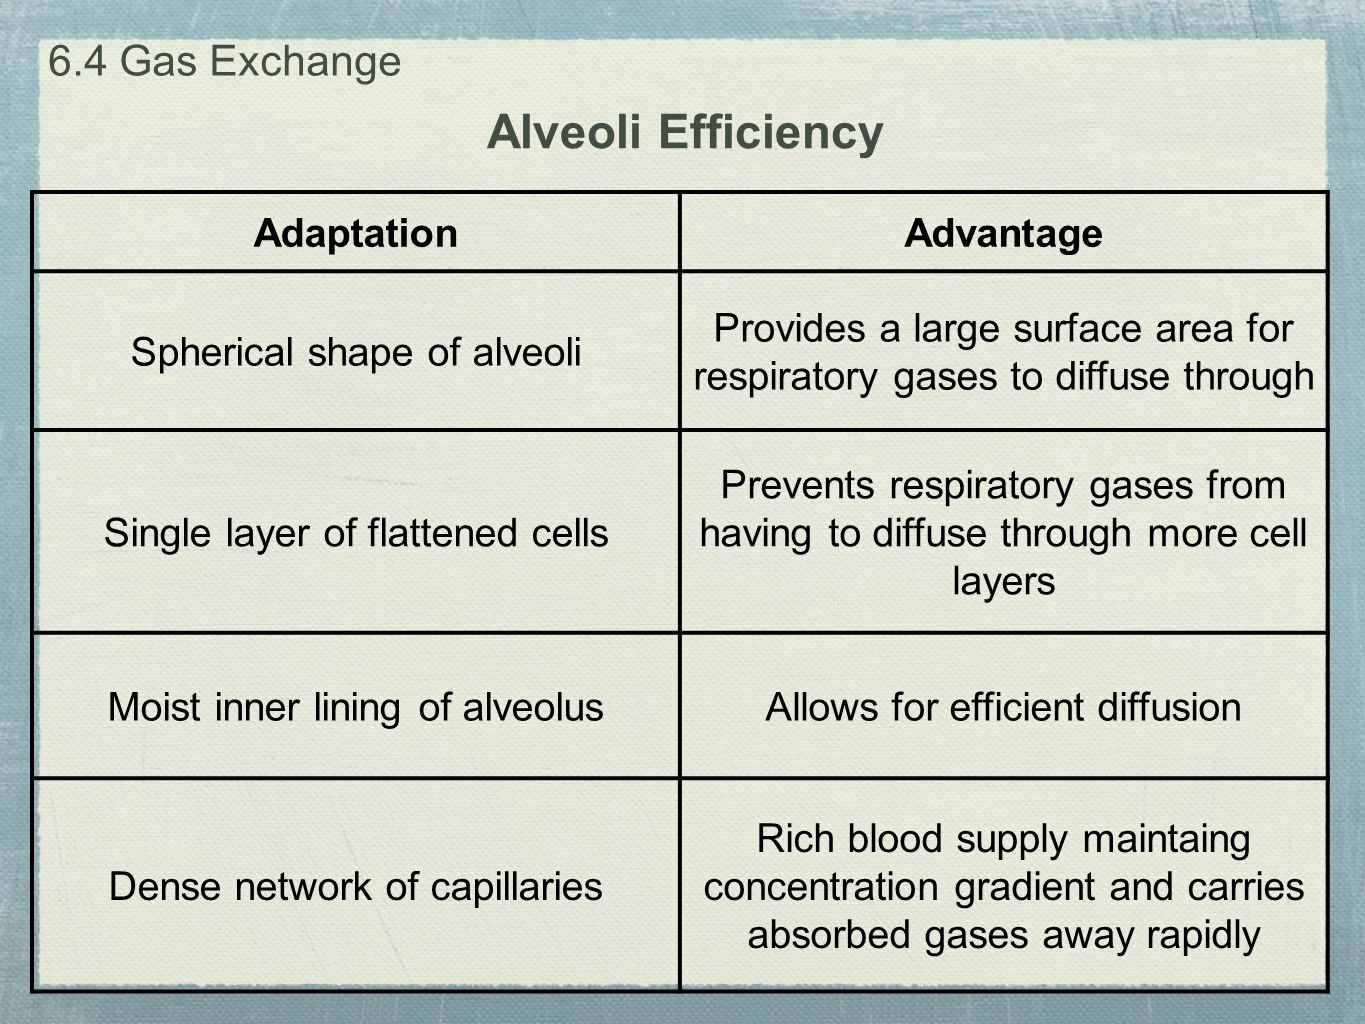 Alveoli Efficiency 6.4 Gas Exchange Adaptation Advantage